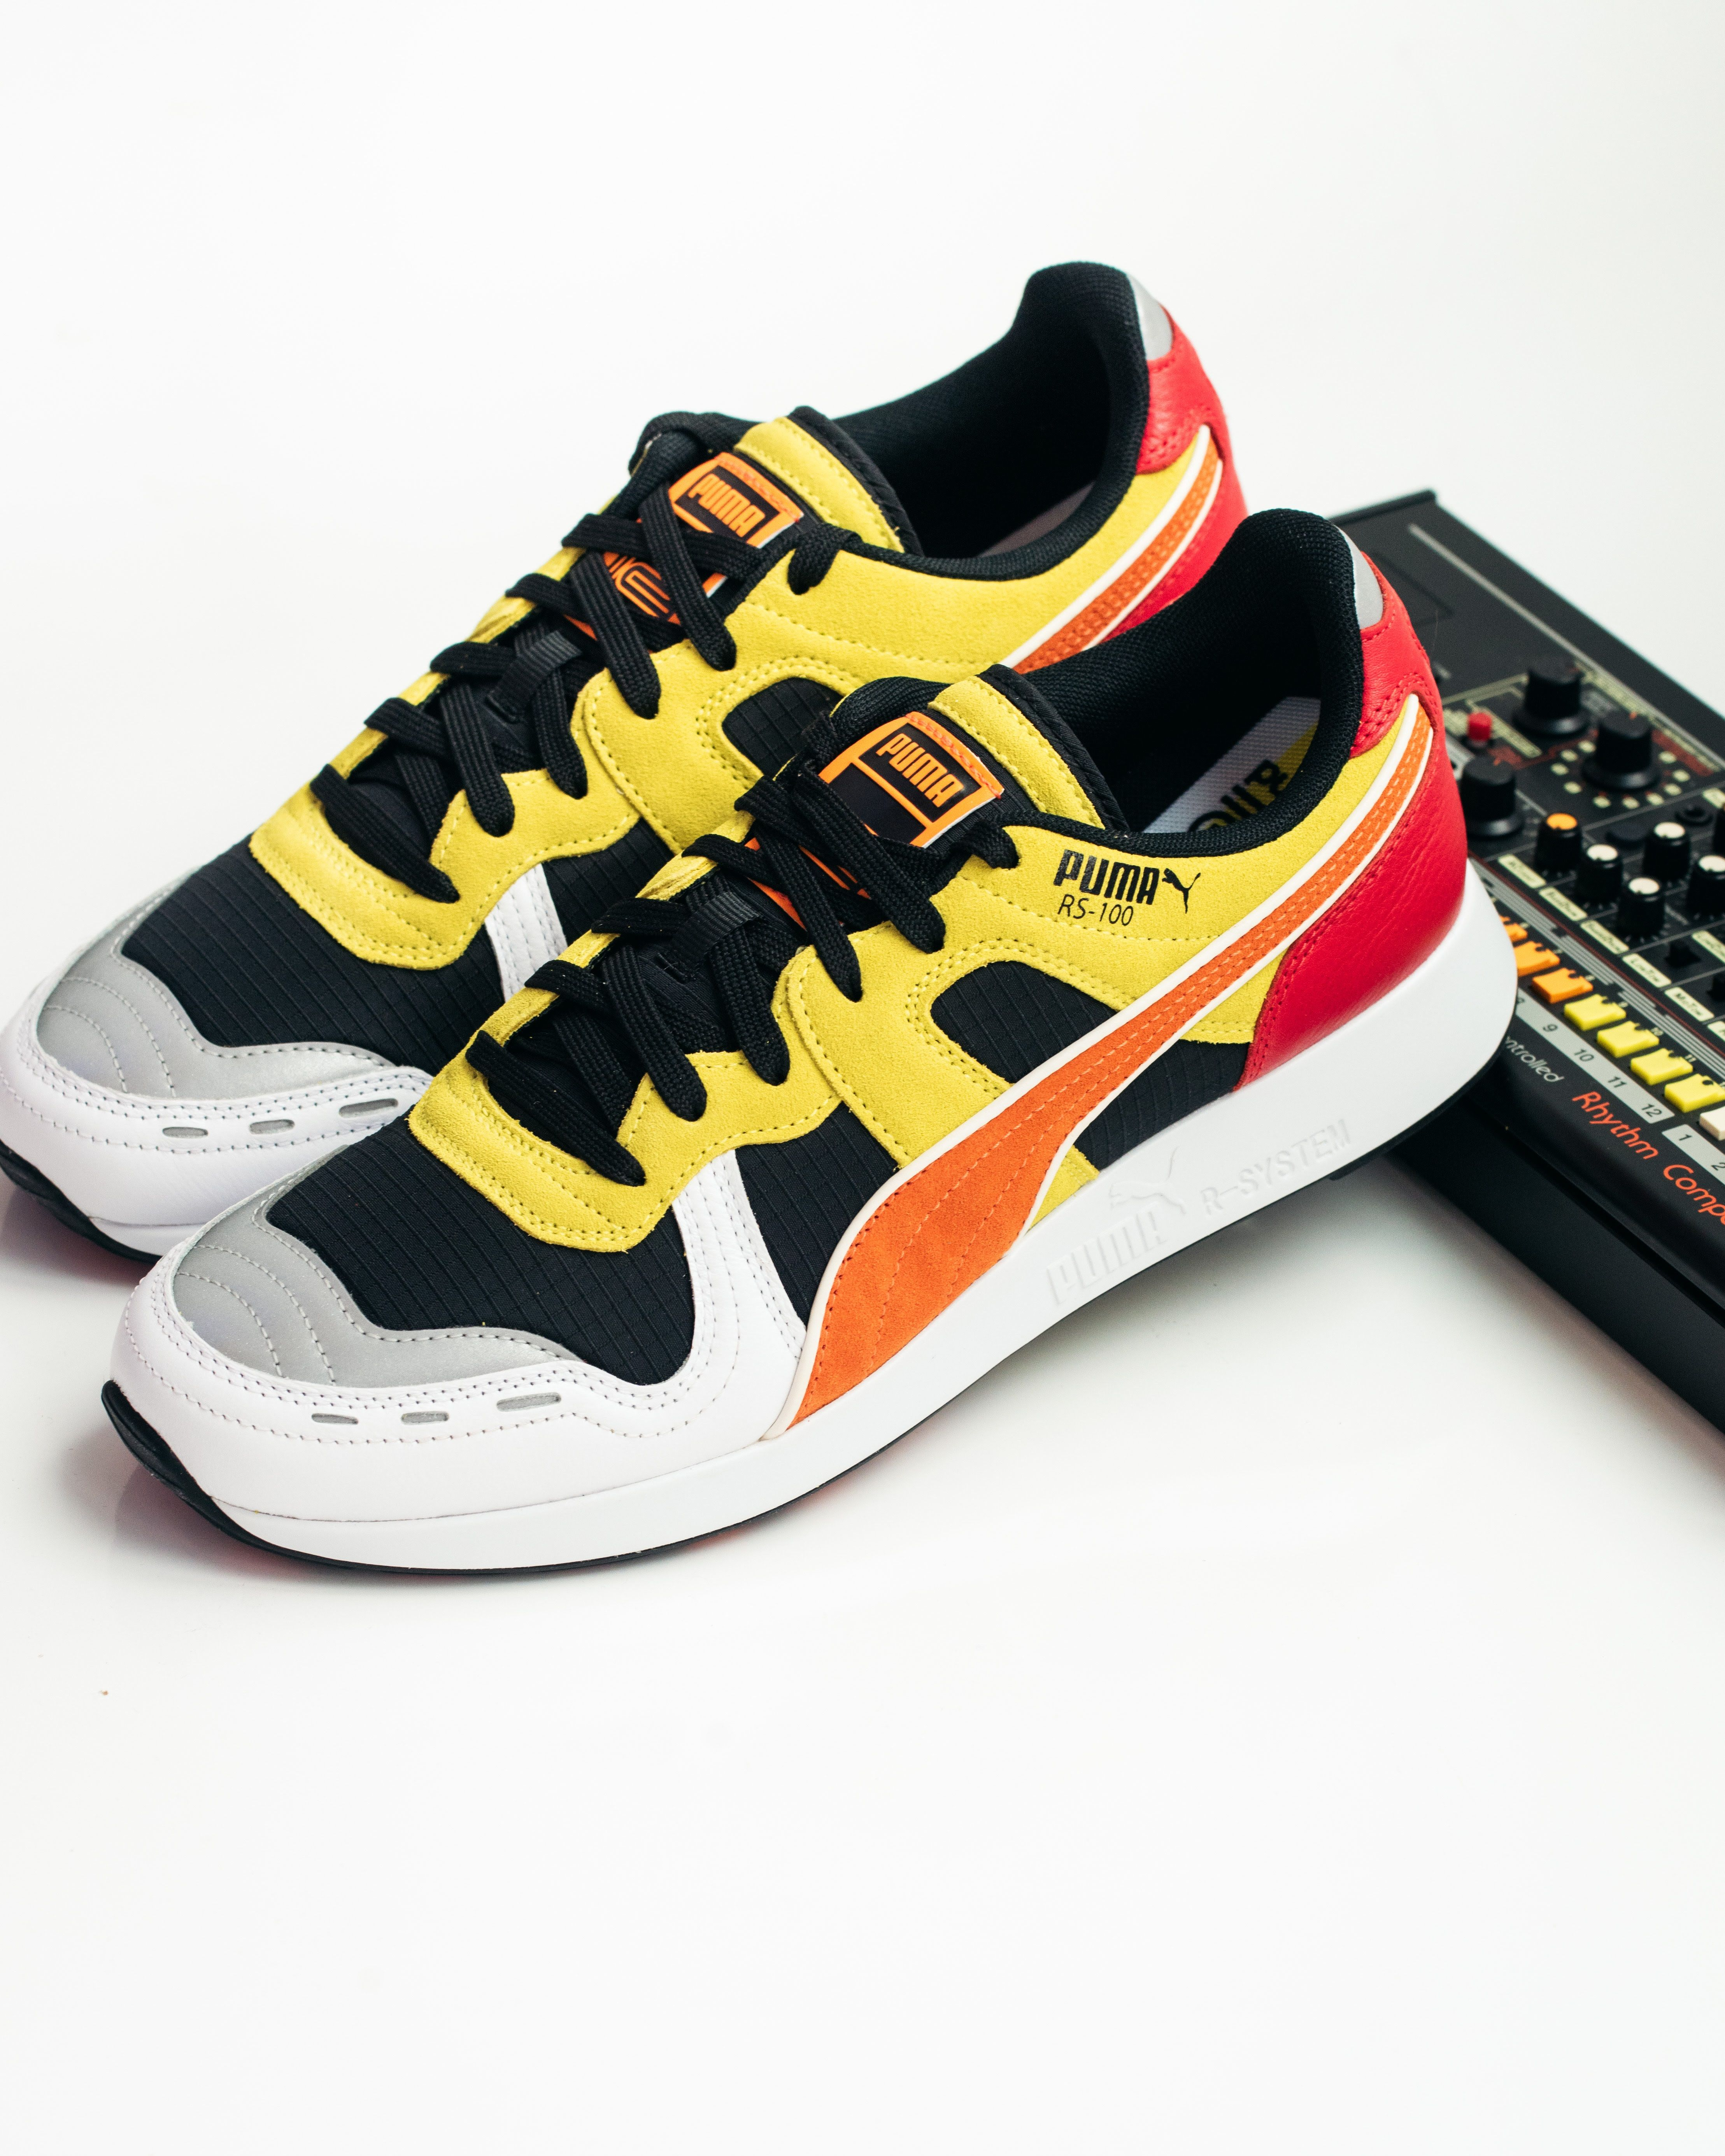 Roland x Puma RS 100 | Sneaker collection, Sneakers, Shoes